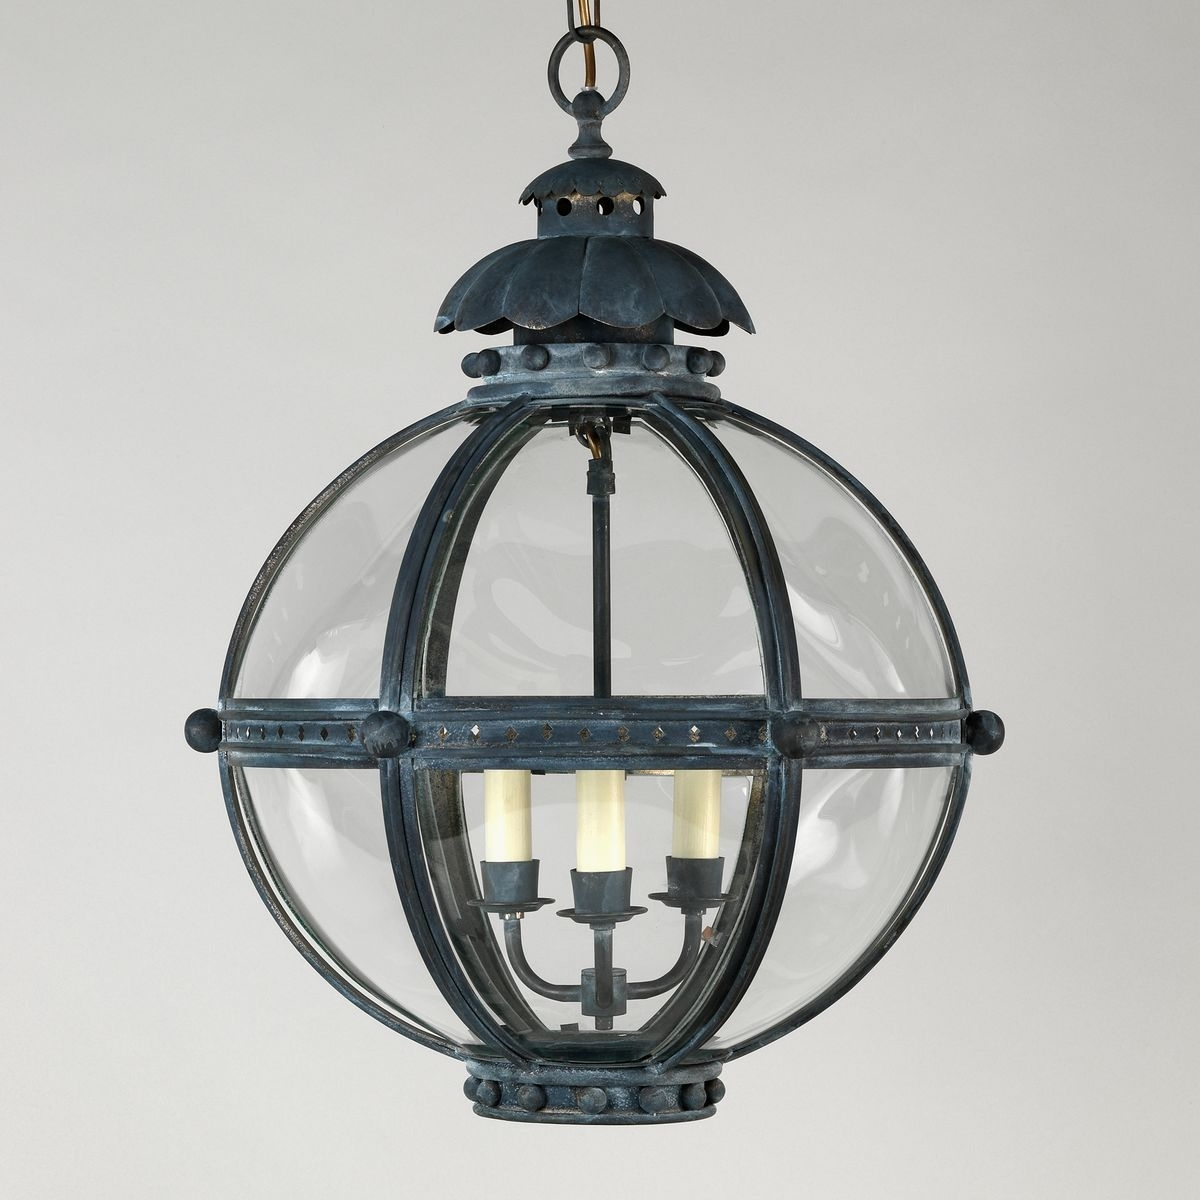 Cheyne Globe Lantern - Vaughan Designs | Chevening Road | Pinterest pertaining to Vaughan Outdoor Lanterns (Image 3 of 20)